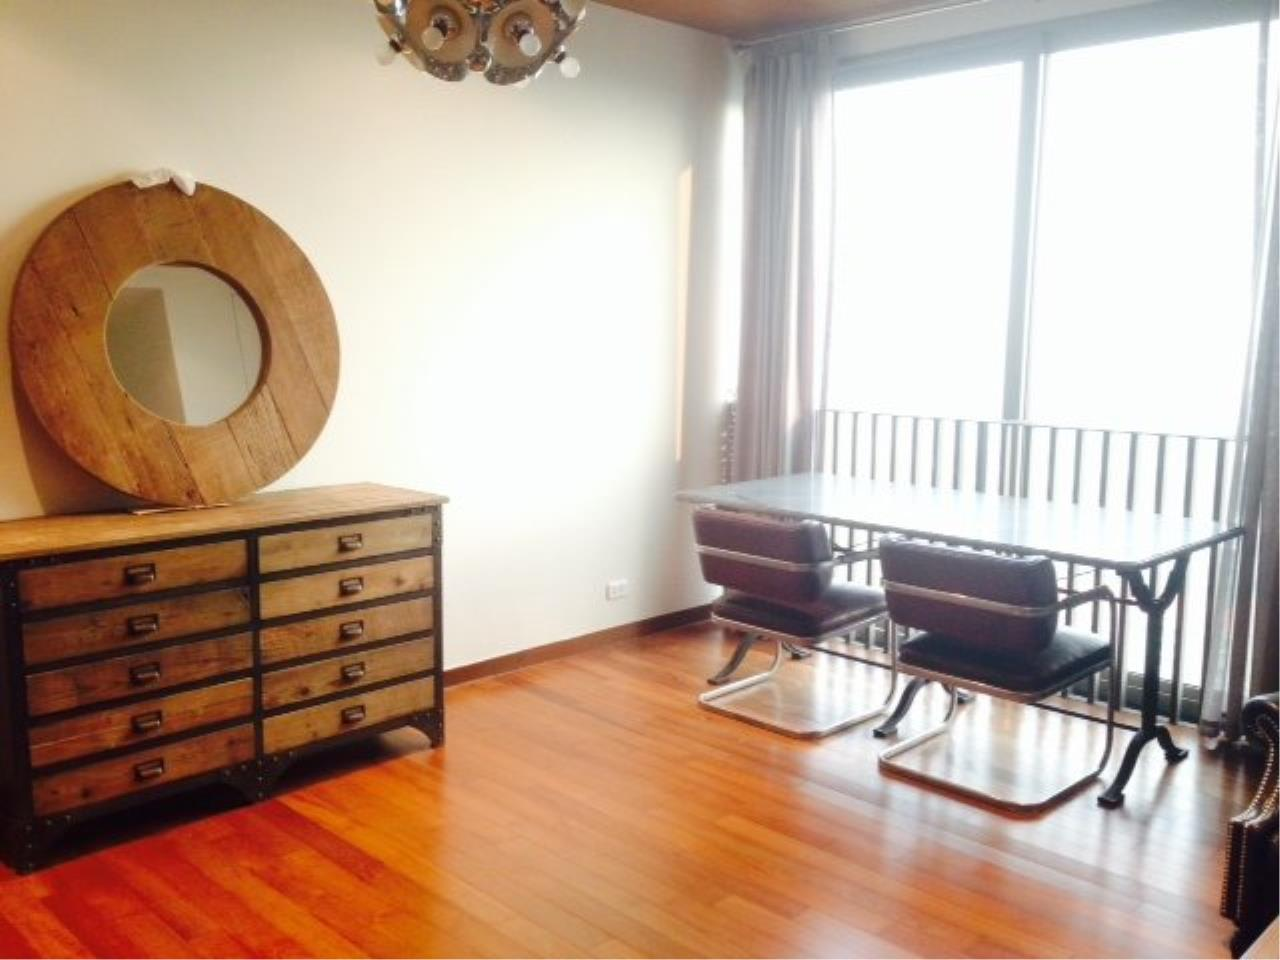 Piri Property Agency's Bright 2 Bedrooms Condo in the Ashton Building for rent on high floor 3